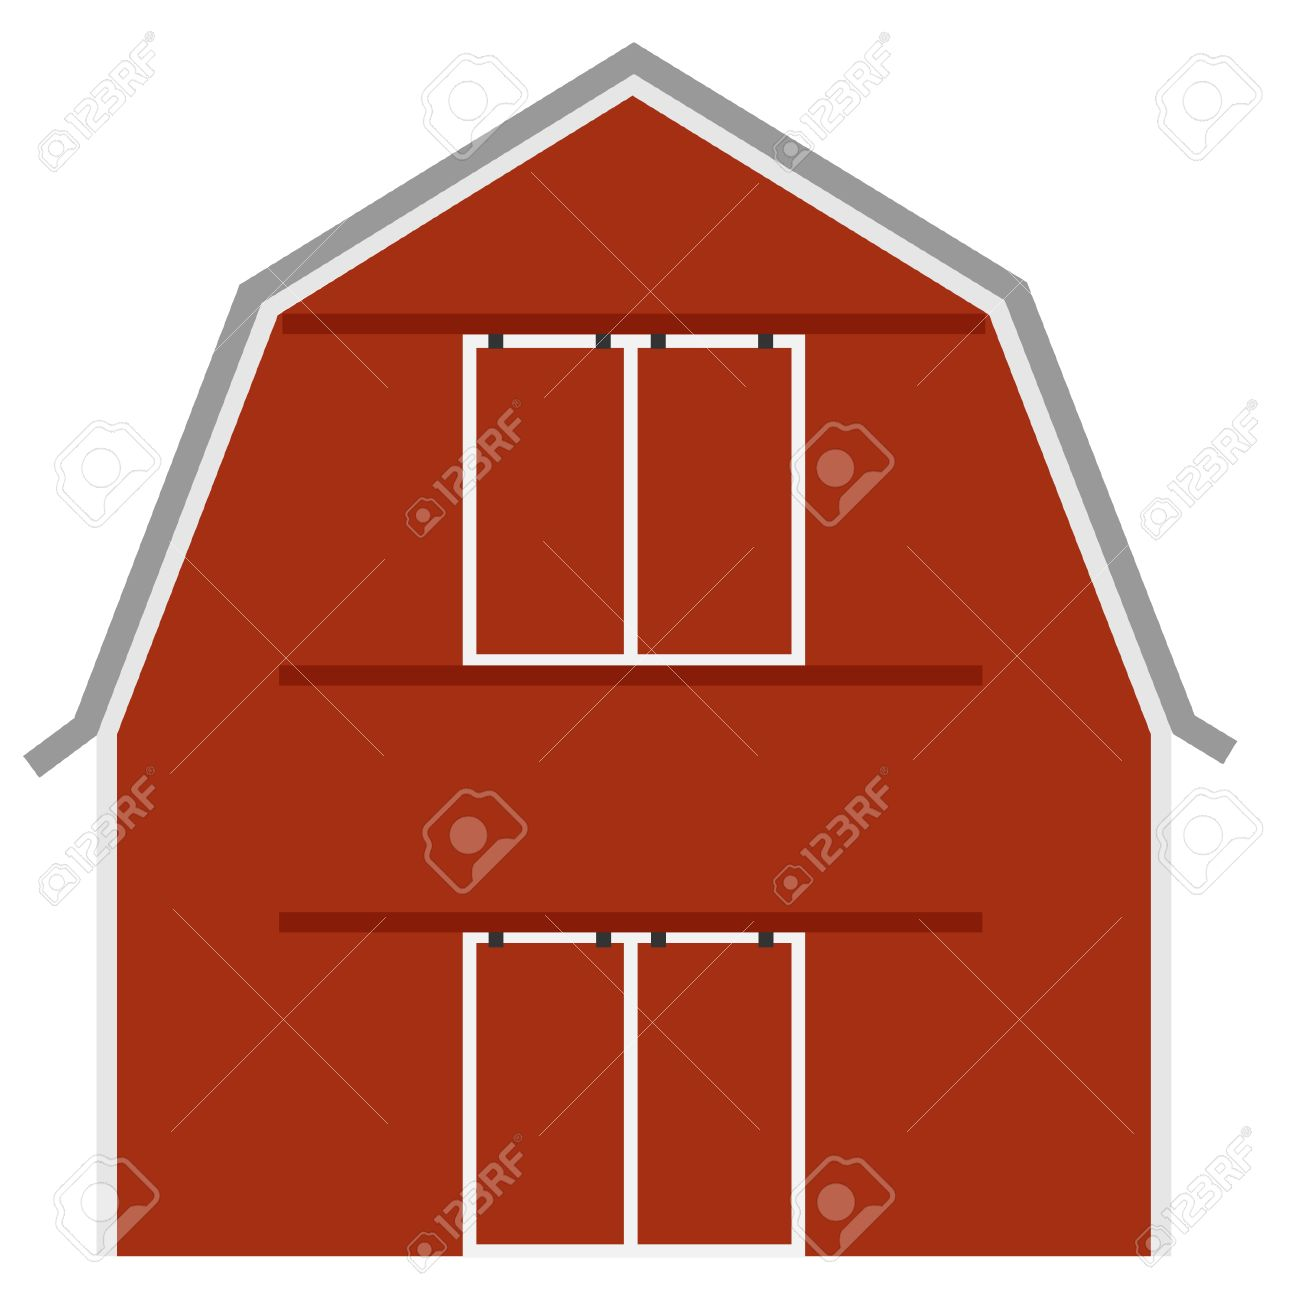 Cow on green pasture with red barn with grain silo royalty free stock - Red Silo Old Red Barn Ot Farm House Barn Door Vector Isolated